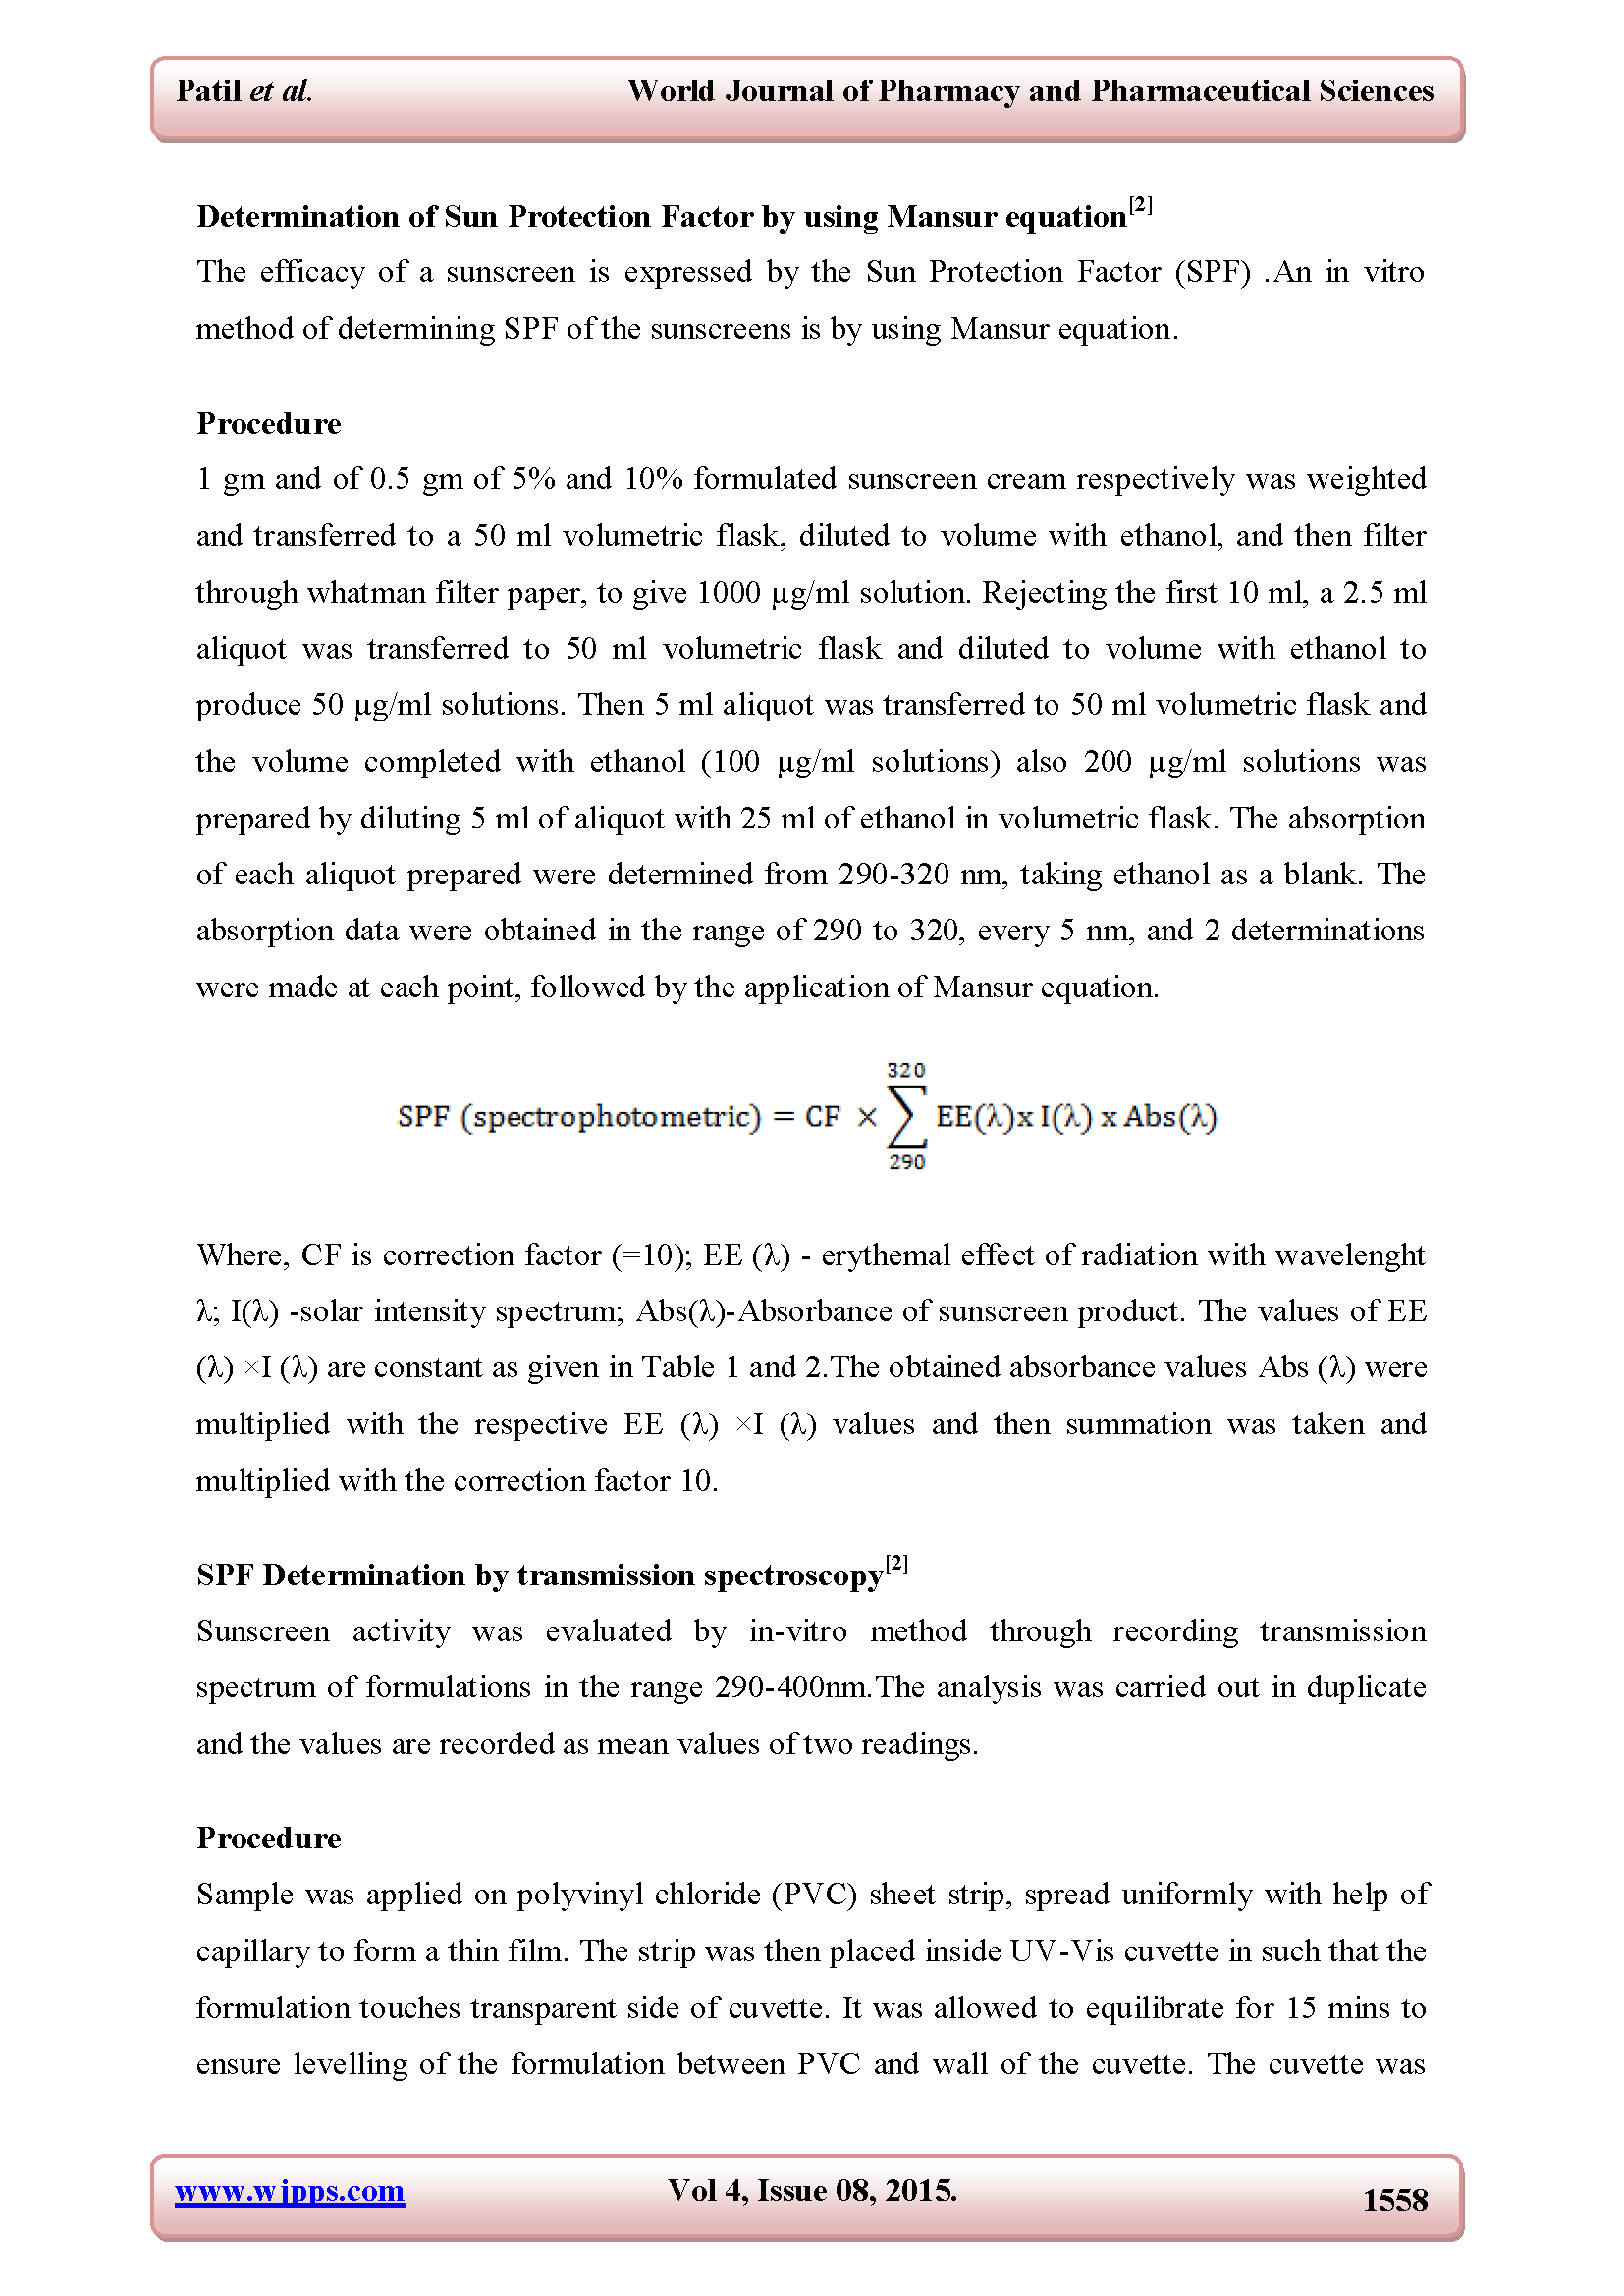 DETERMINATION OF SUN PROTECTION EFFECT OF HERBAL SUNSCREEN CREAM Page 5